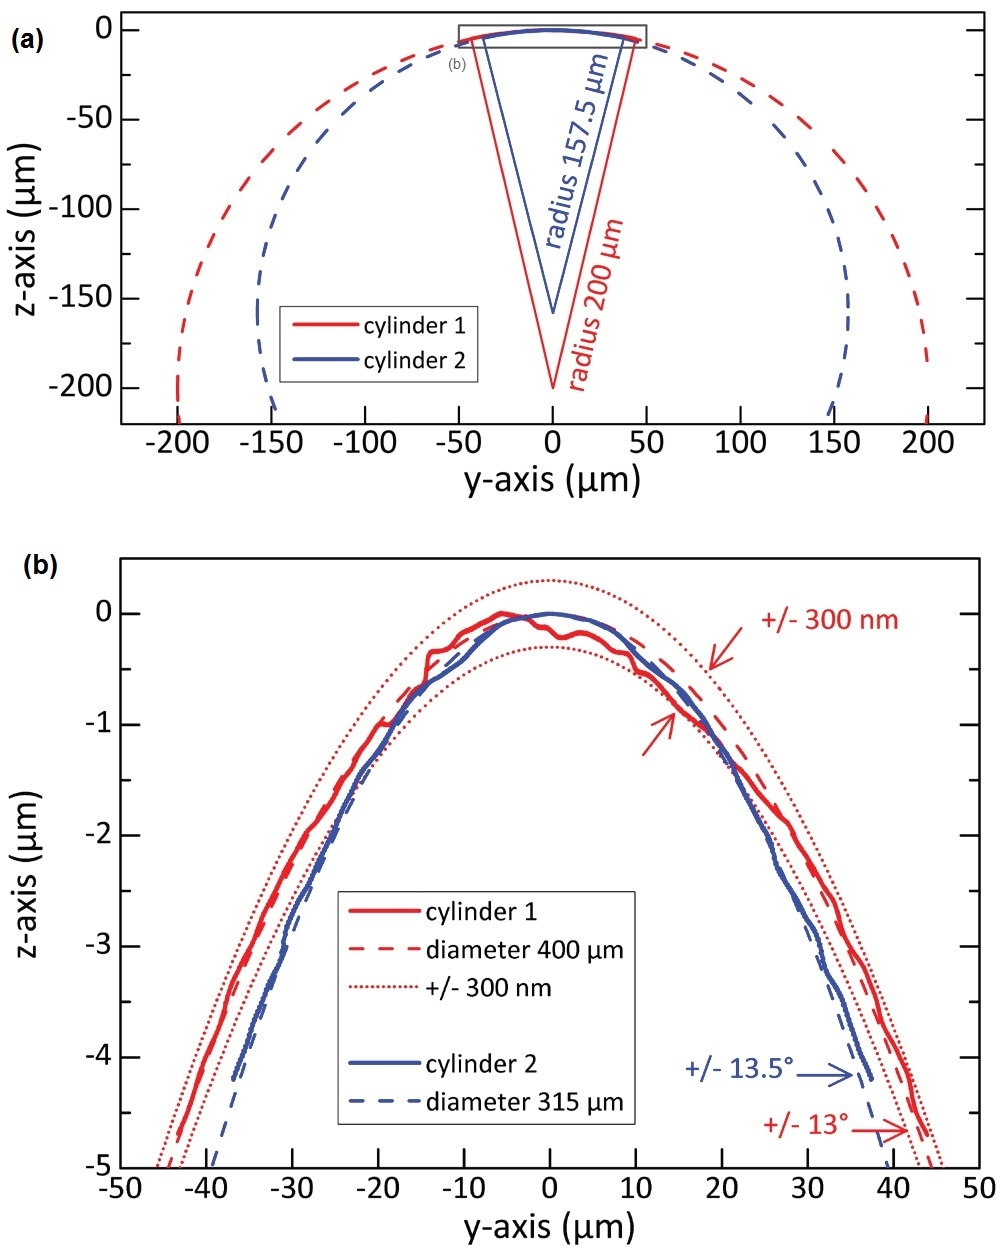 Profilometry measurements on two metal cylinders with diameters of 400 µm and 315 µm